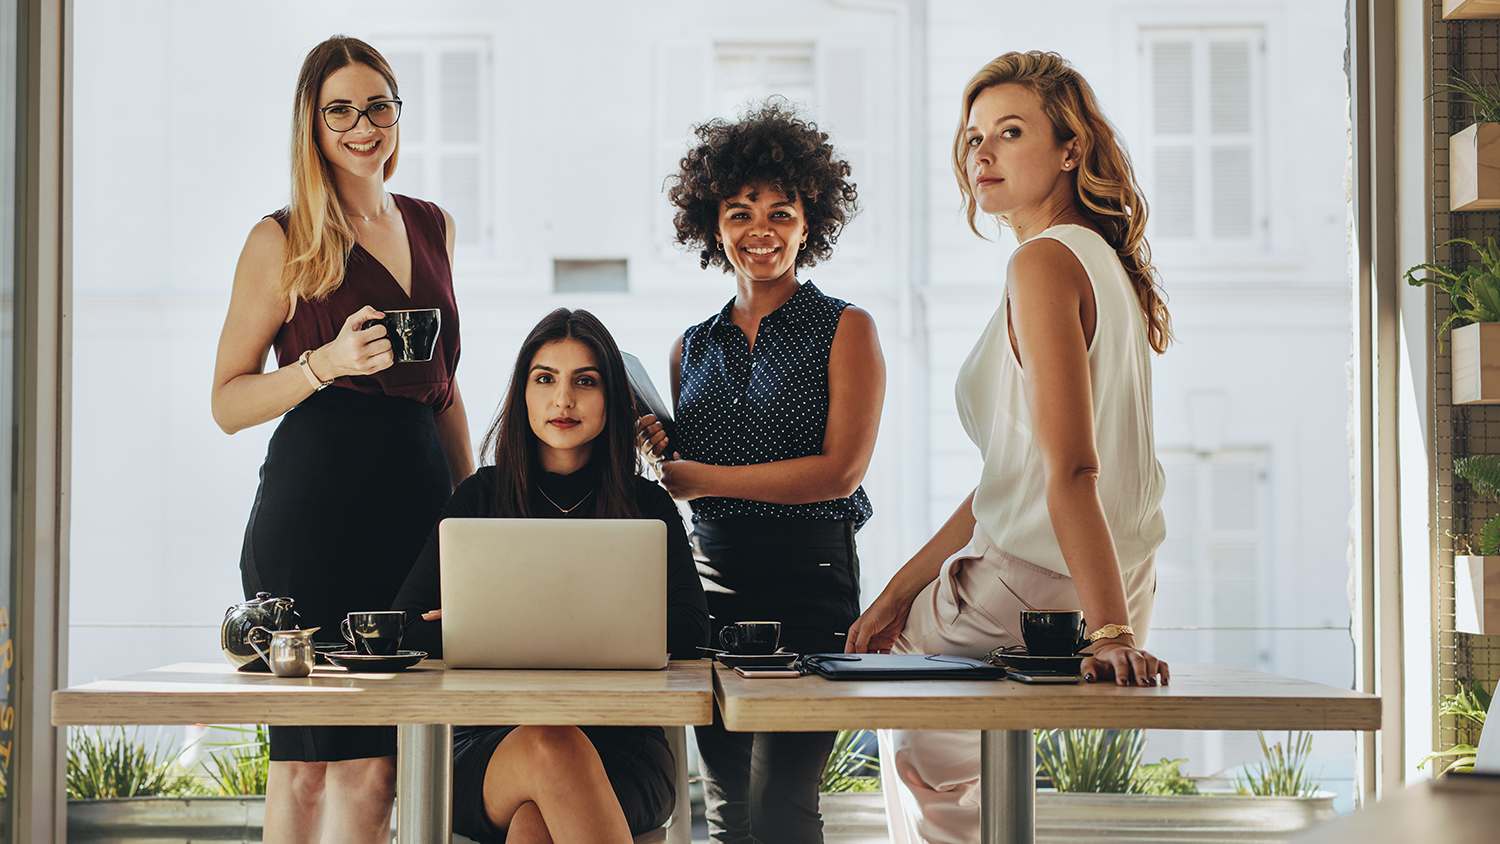 WHERE ARE WOMEN IN BUSINESS TODAY?